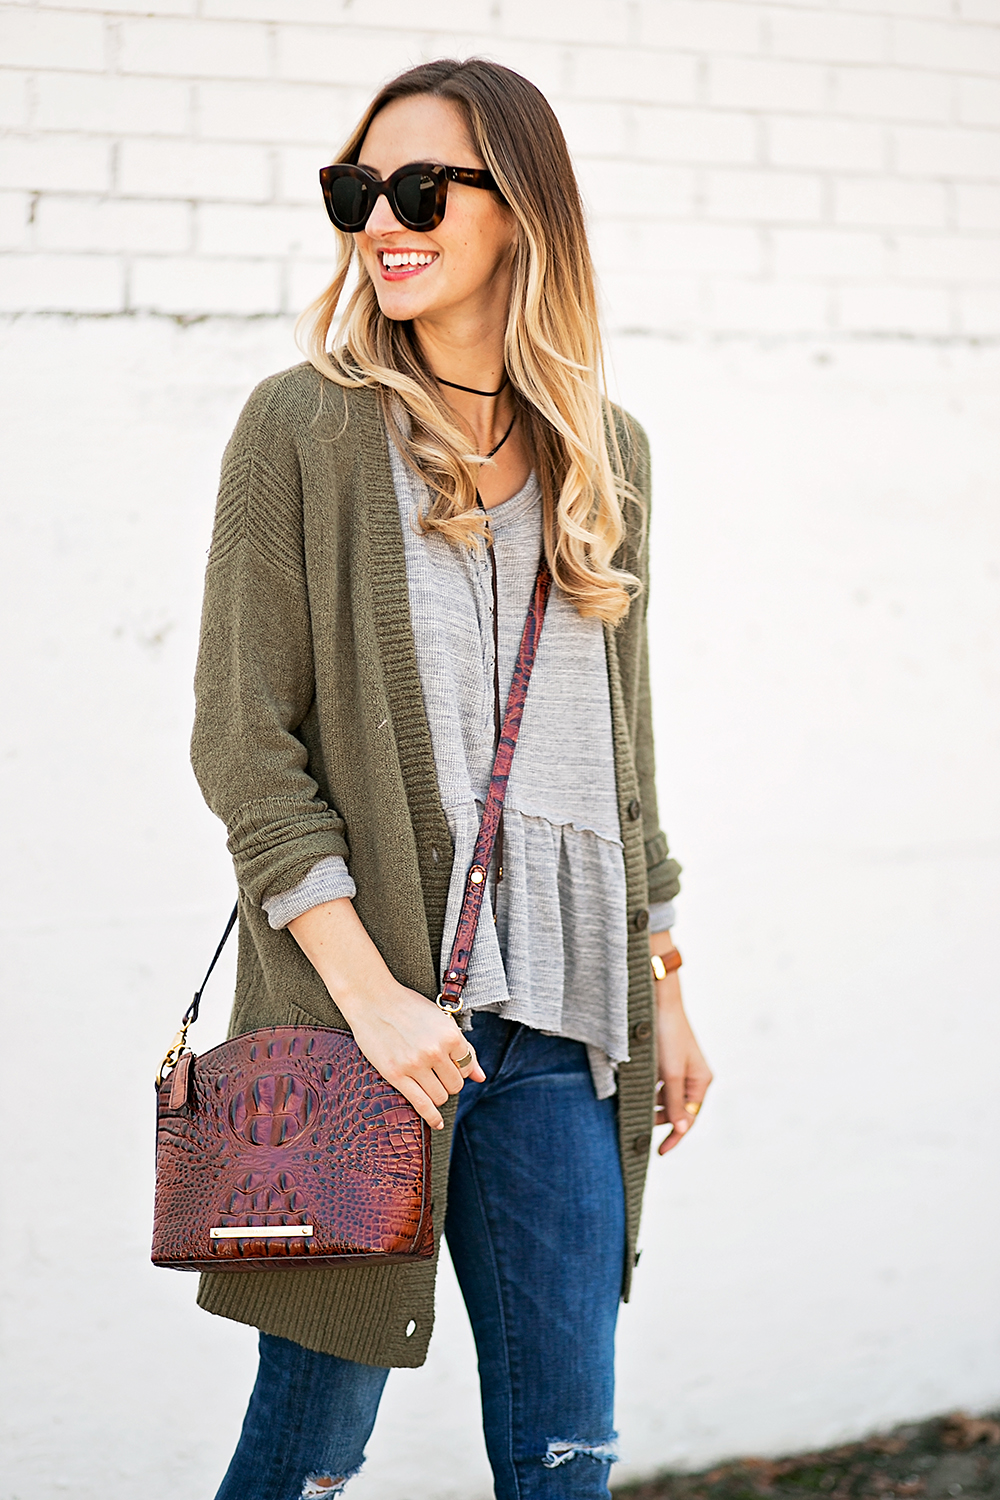 livvyland-blog-olivia-watson-peplum-thermal-tee-shirt-olive-cardigan-boho-outfit-casual-taupe-ankle-booties-fall-outfit-idea-celine-baby-marta-sunglasses-1